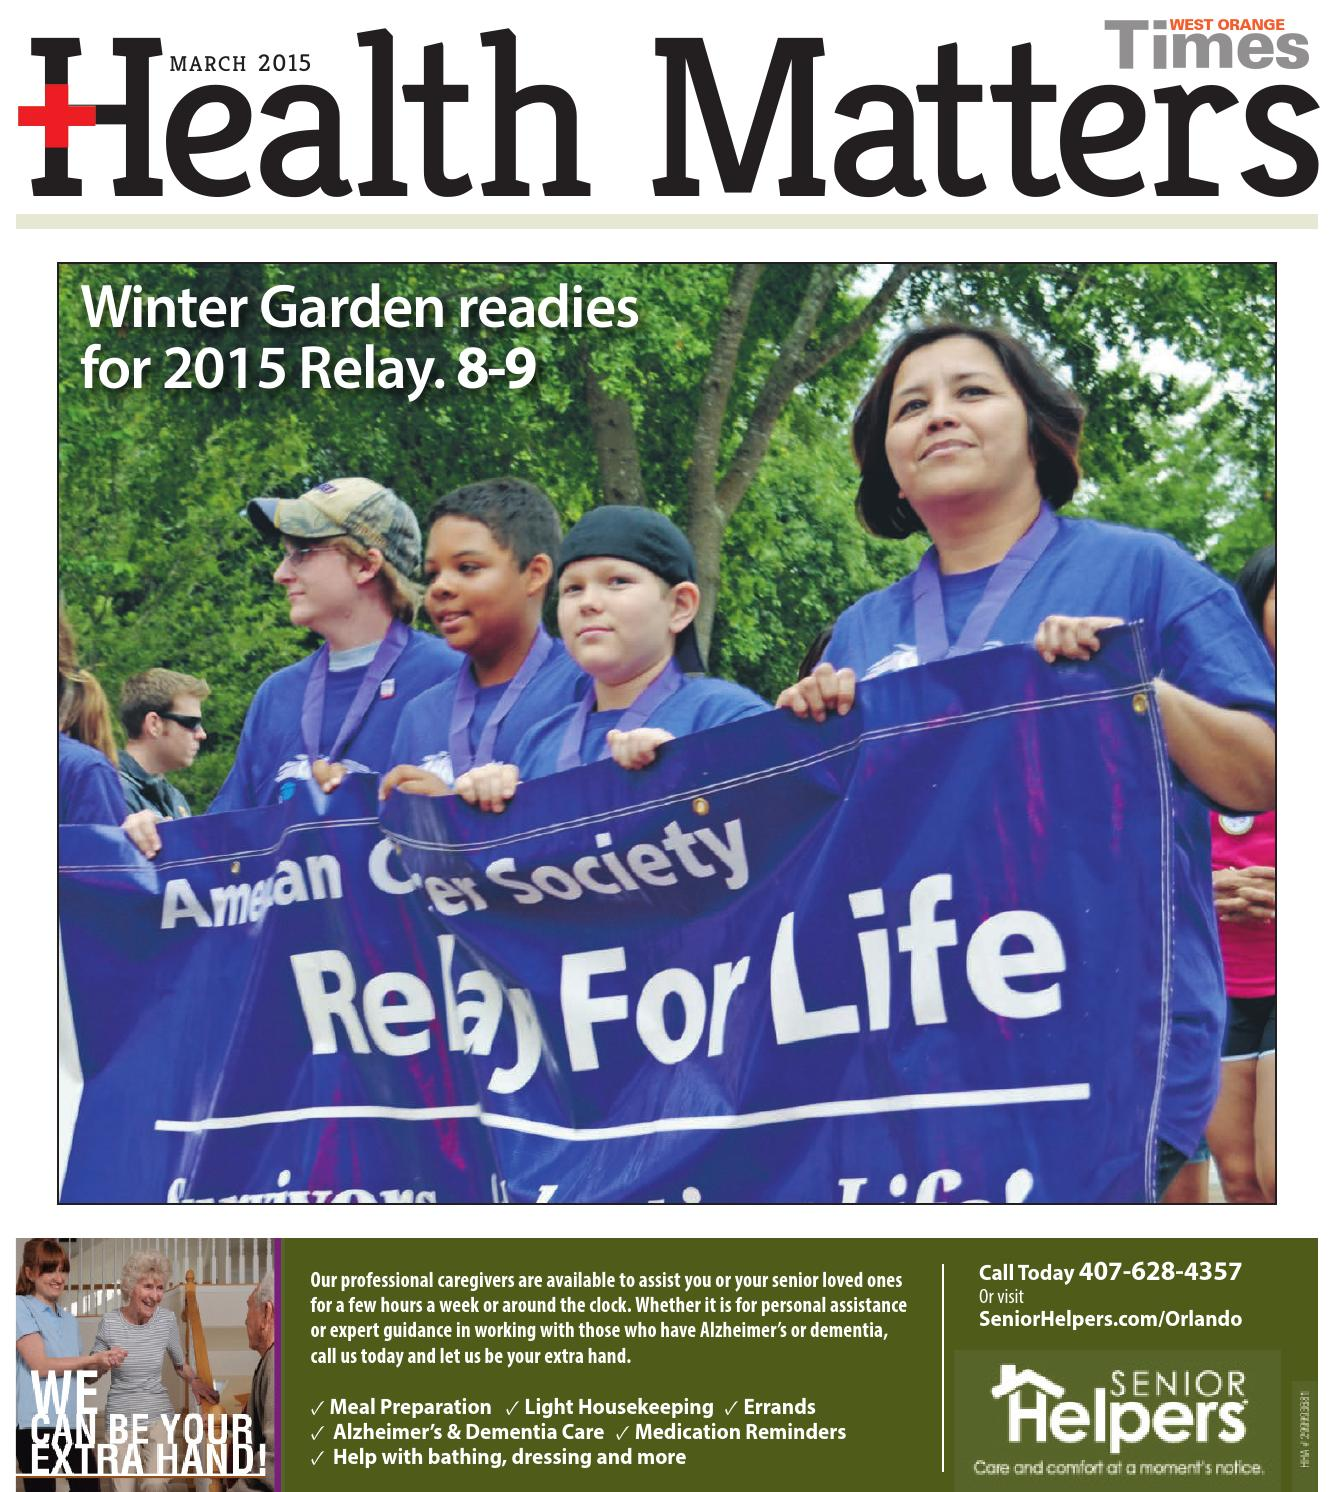 03 12 15 West Orange Times Amp Observer Health Matters By